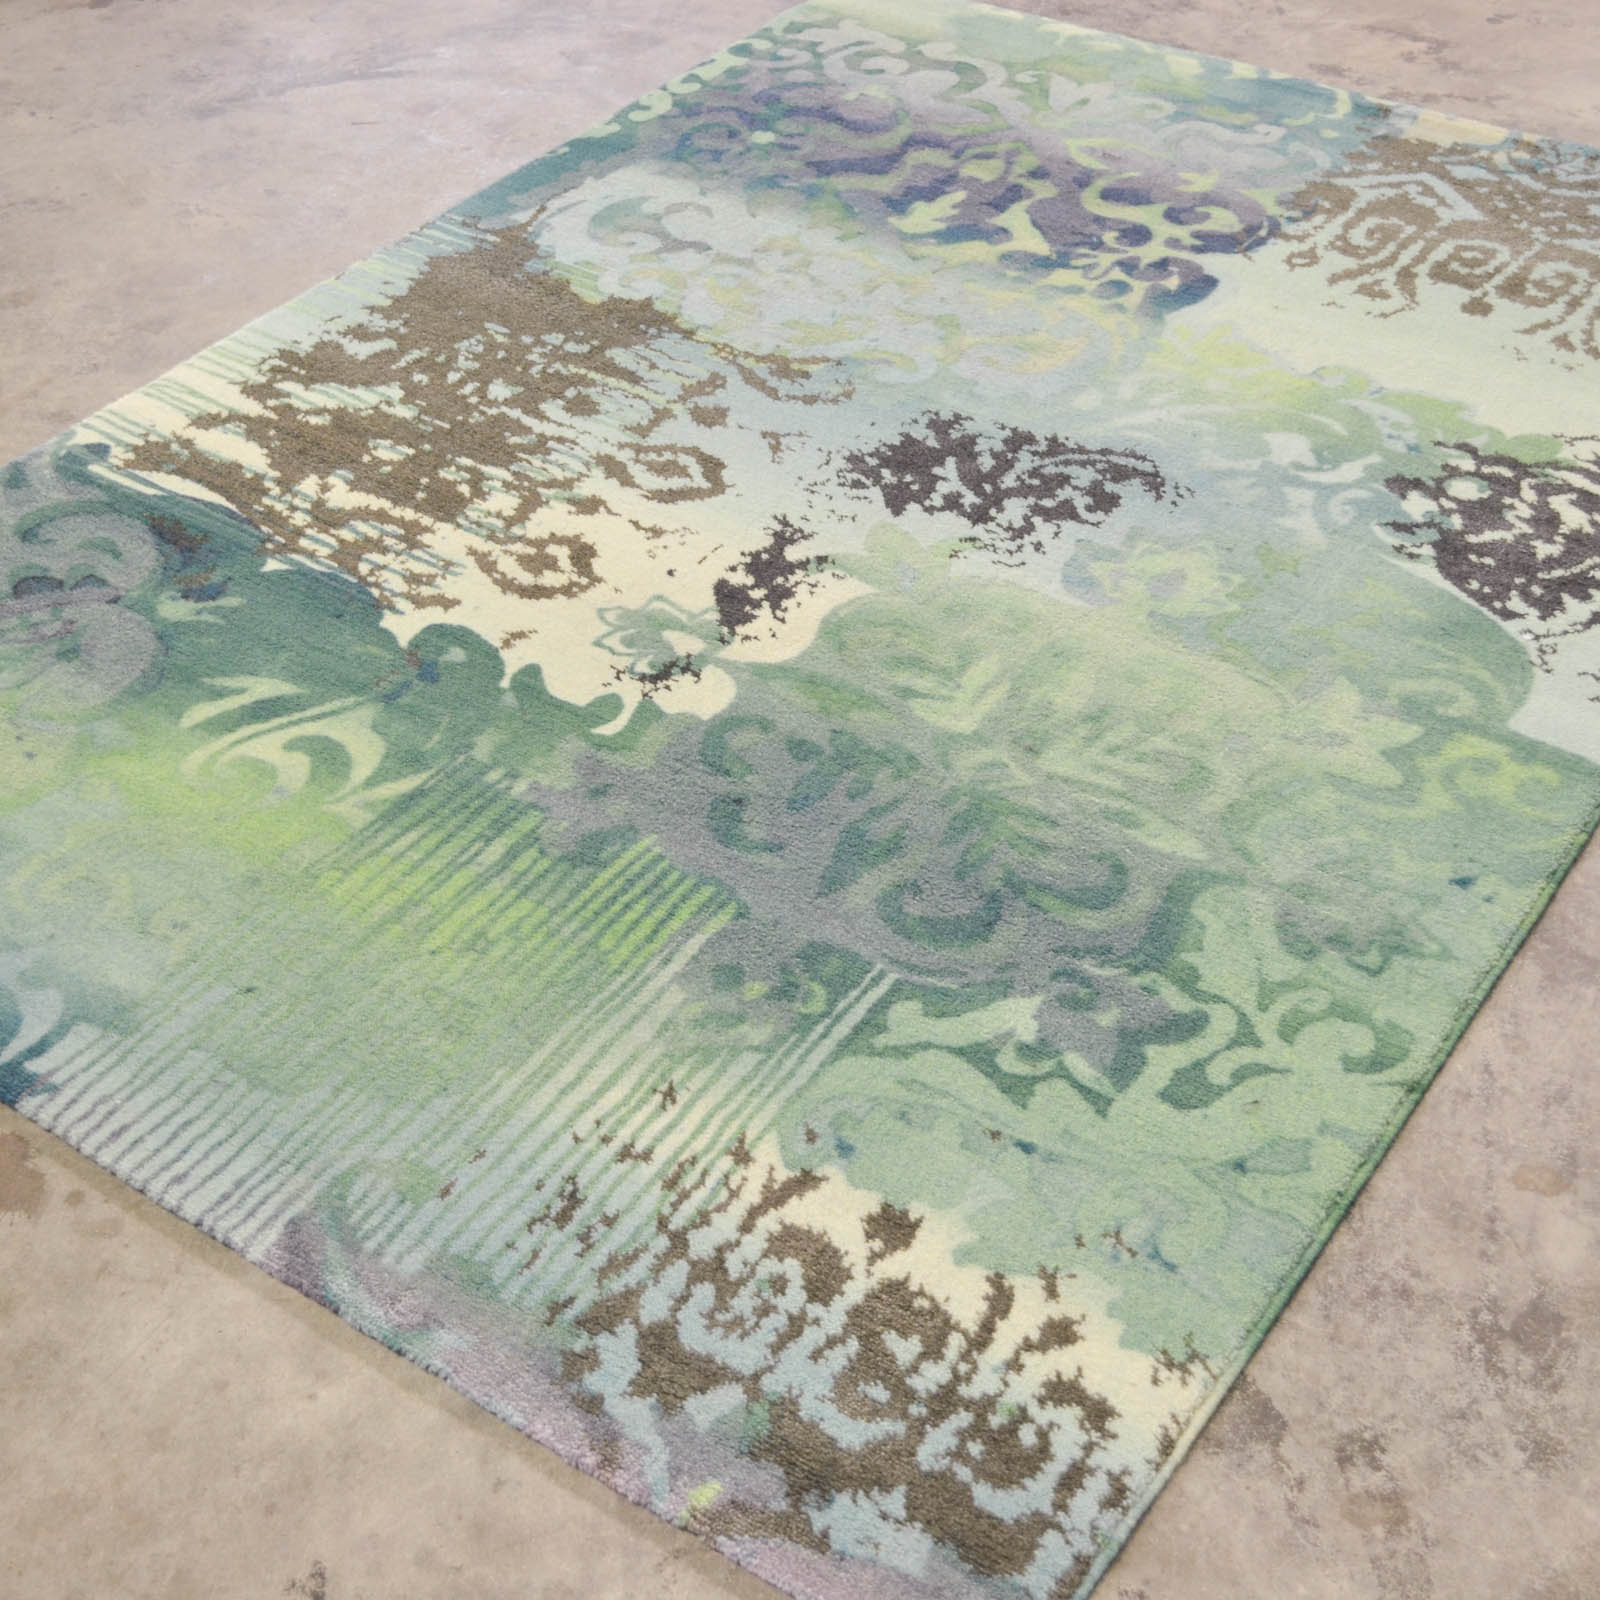 Holograph Bohemian Rugs 16708 by Brink and Campman